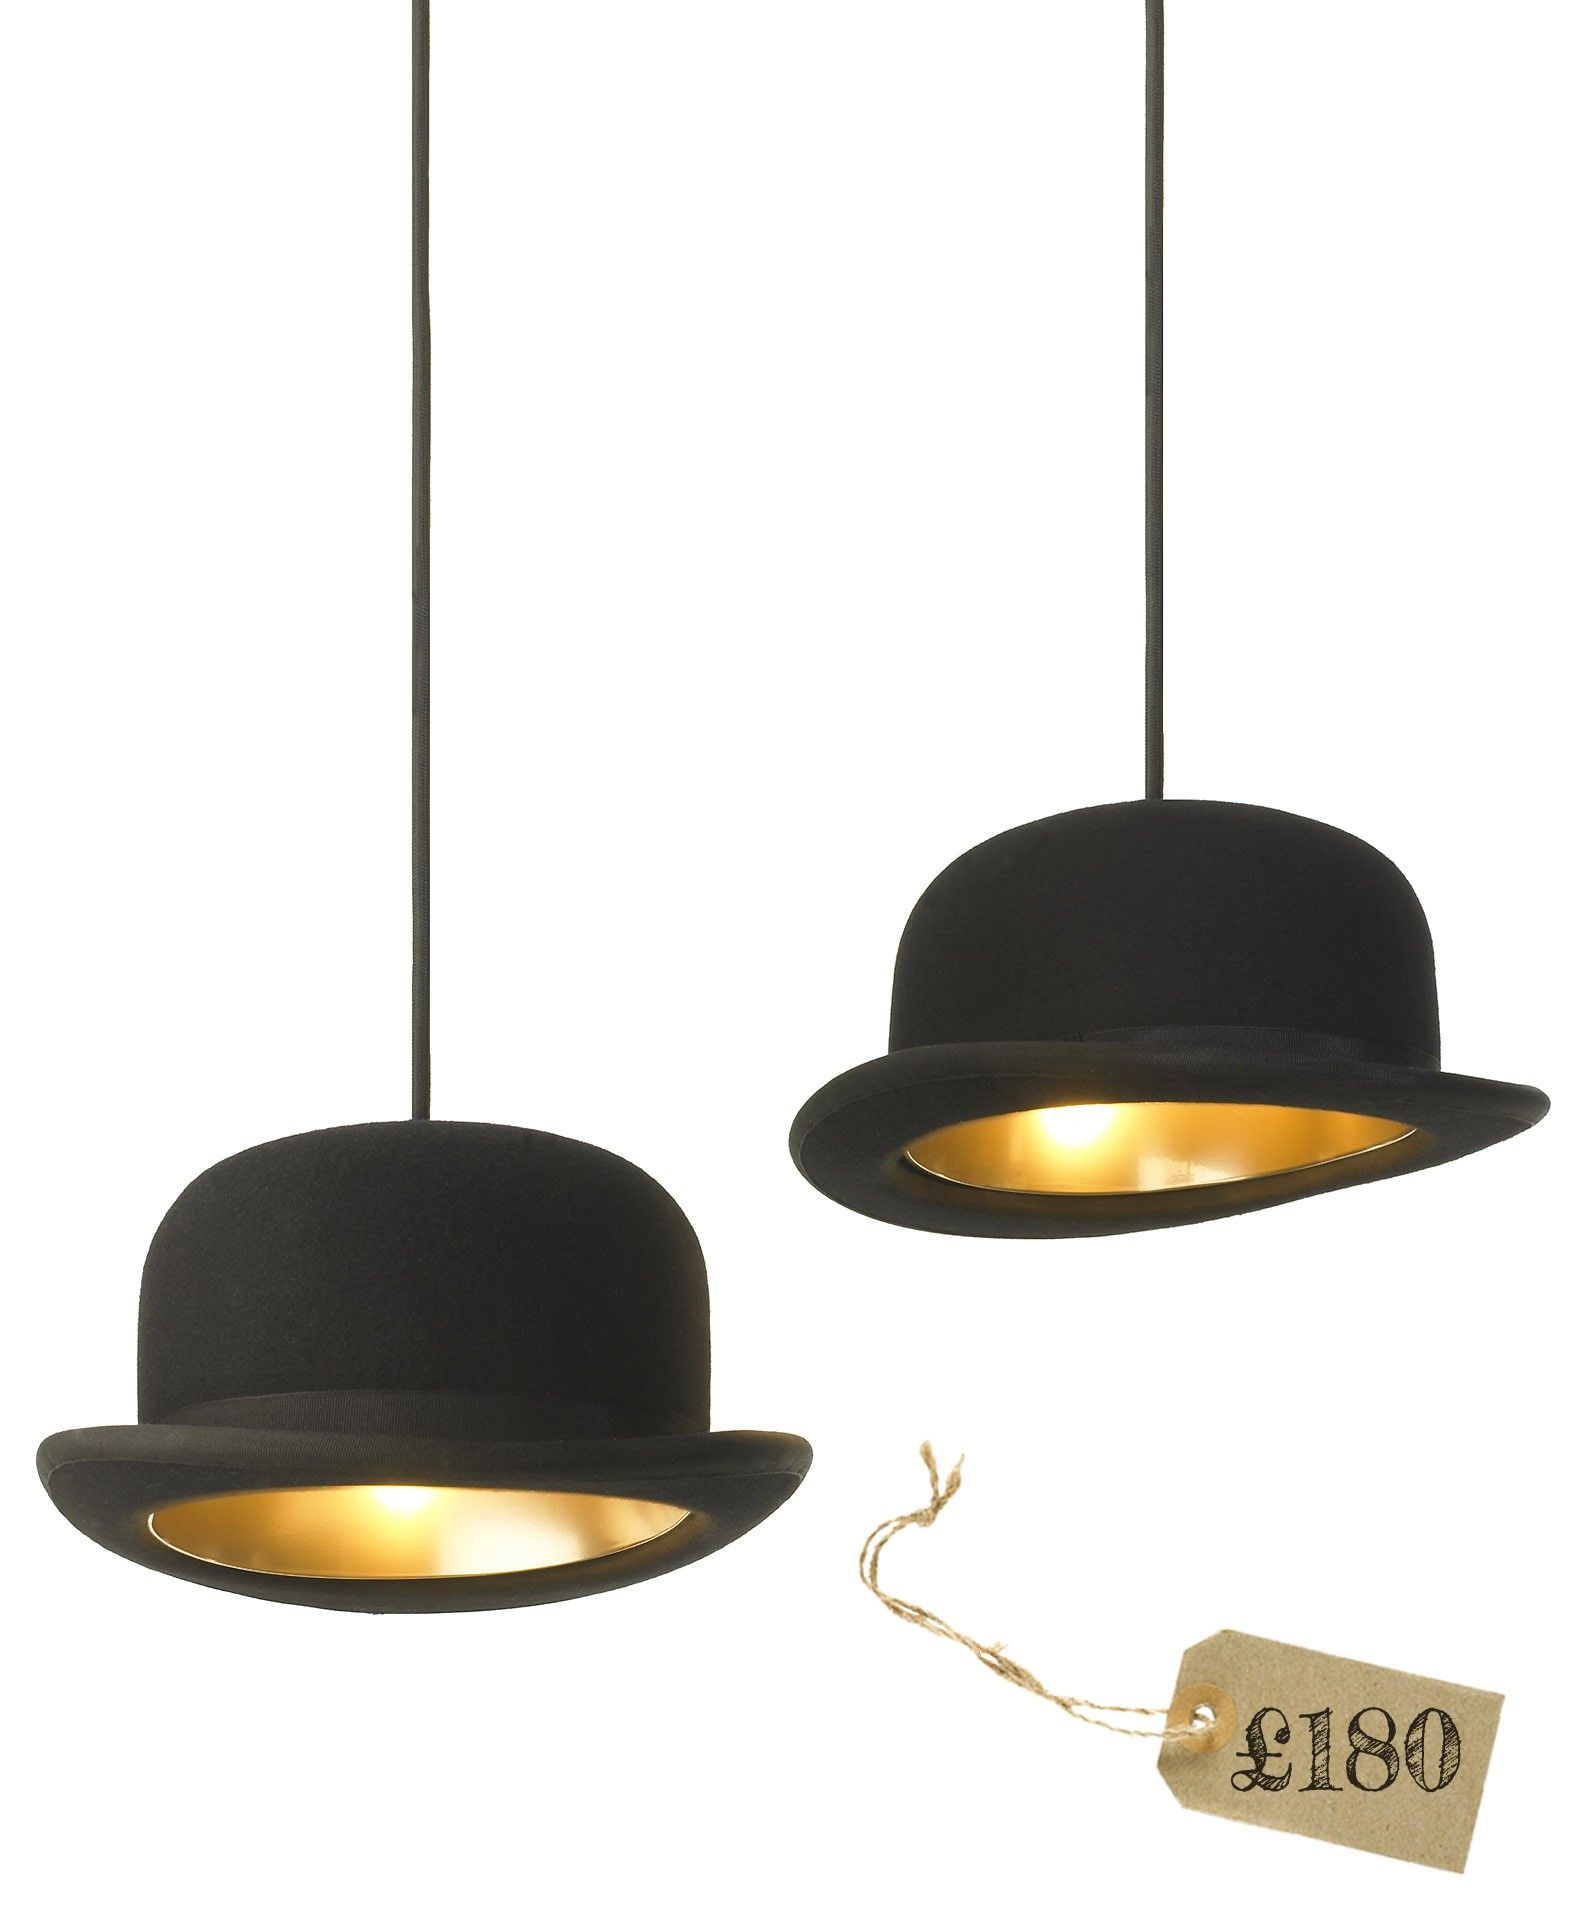 Jeeves ceiling lights lights pinterest ceiling lights jeeves ceiling lights pool table greentooth Gallery